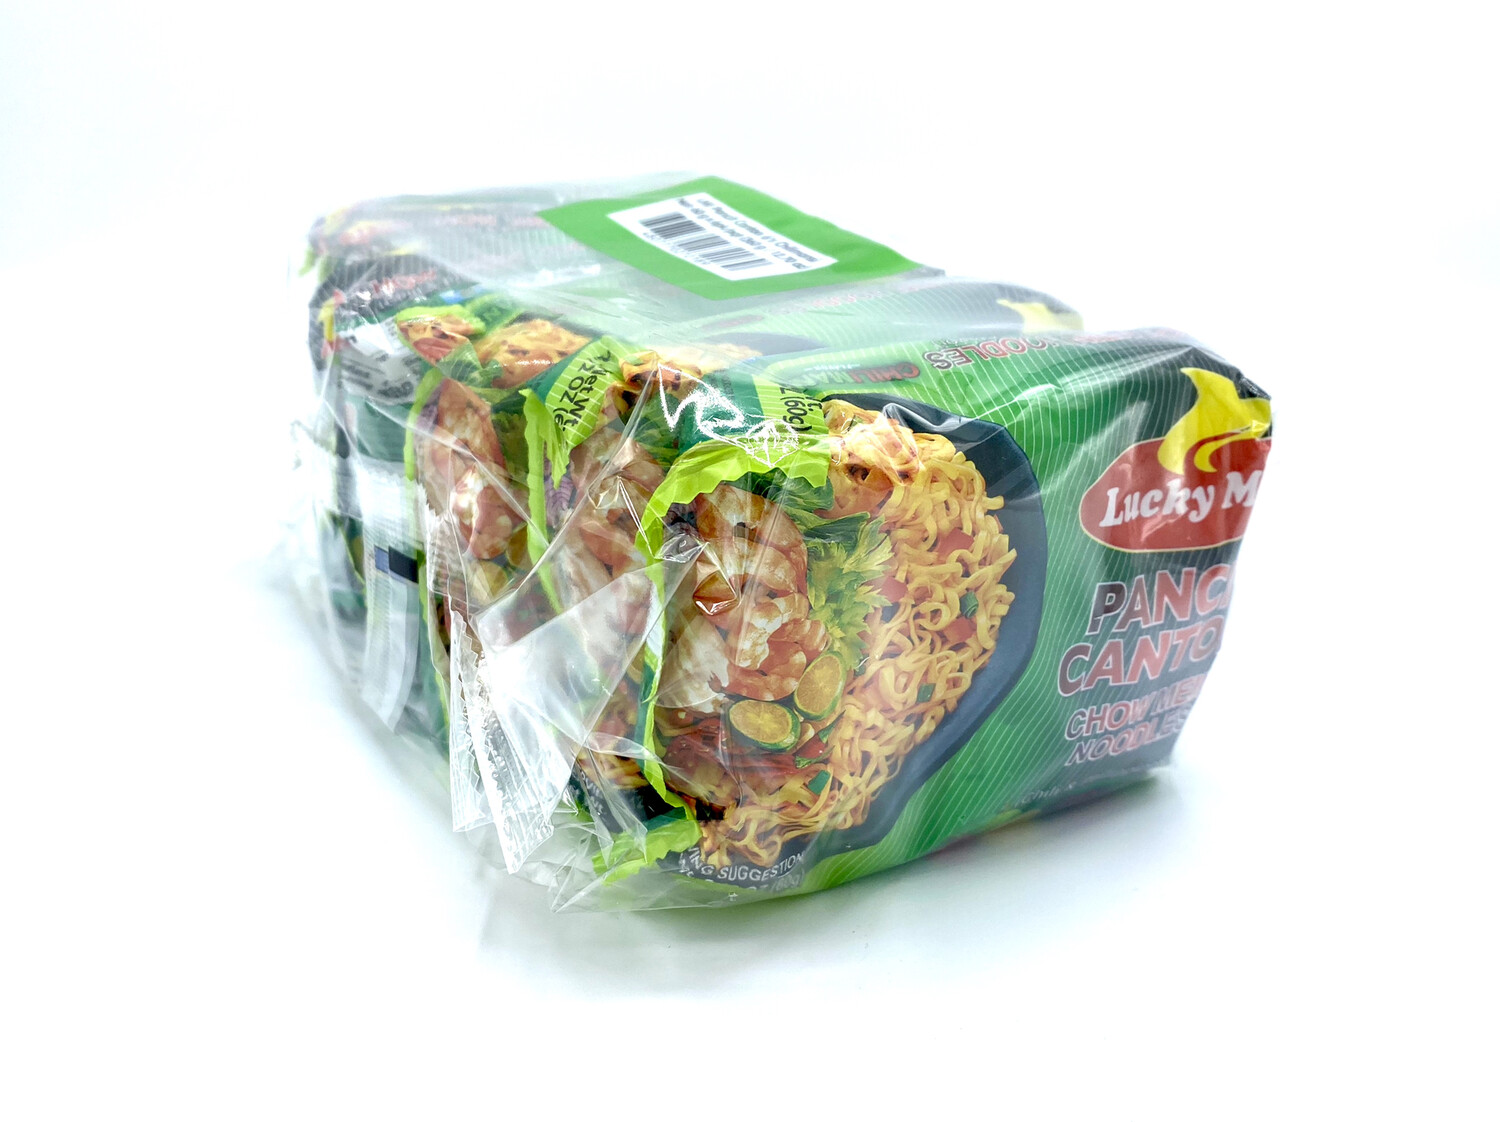 Lucky Me Pancit Canton Chilimansi 6 Pack